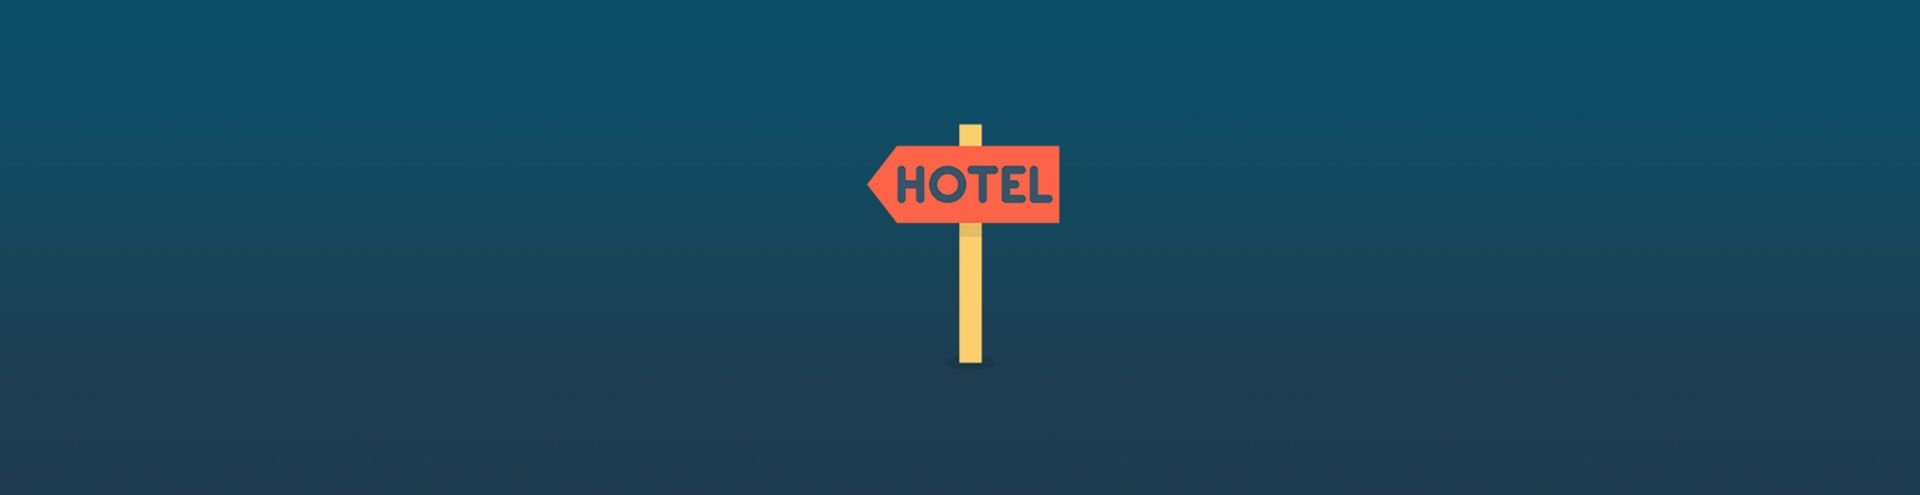 10 Hotel Booking and Reservation App Trends in 2018